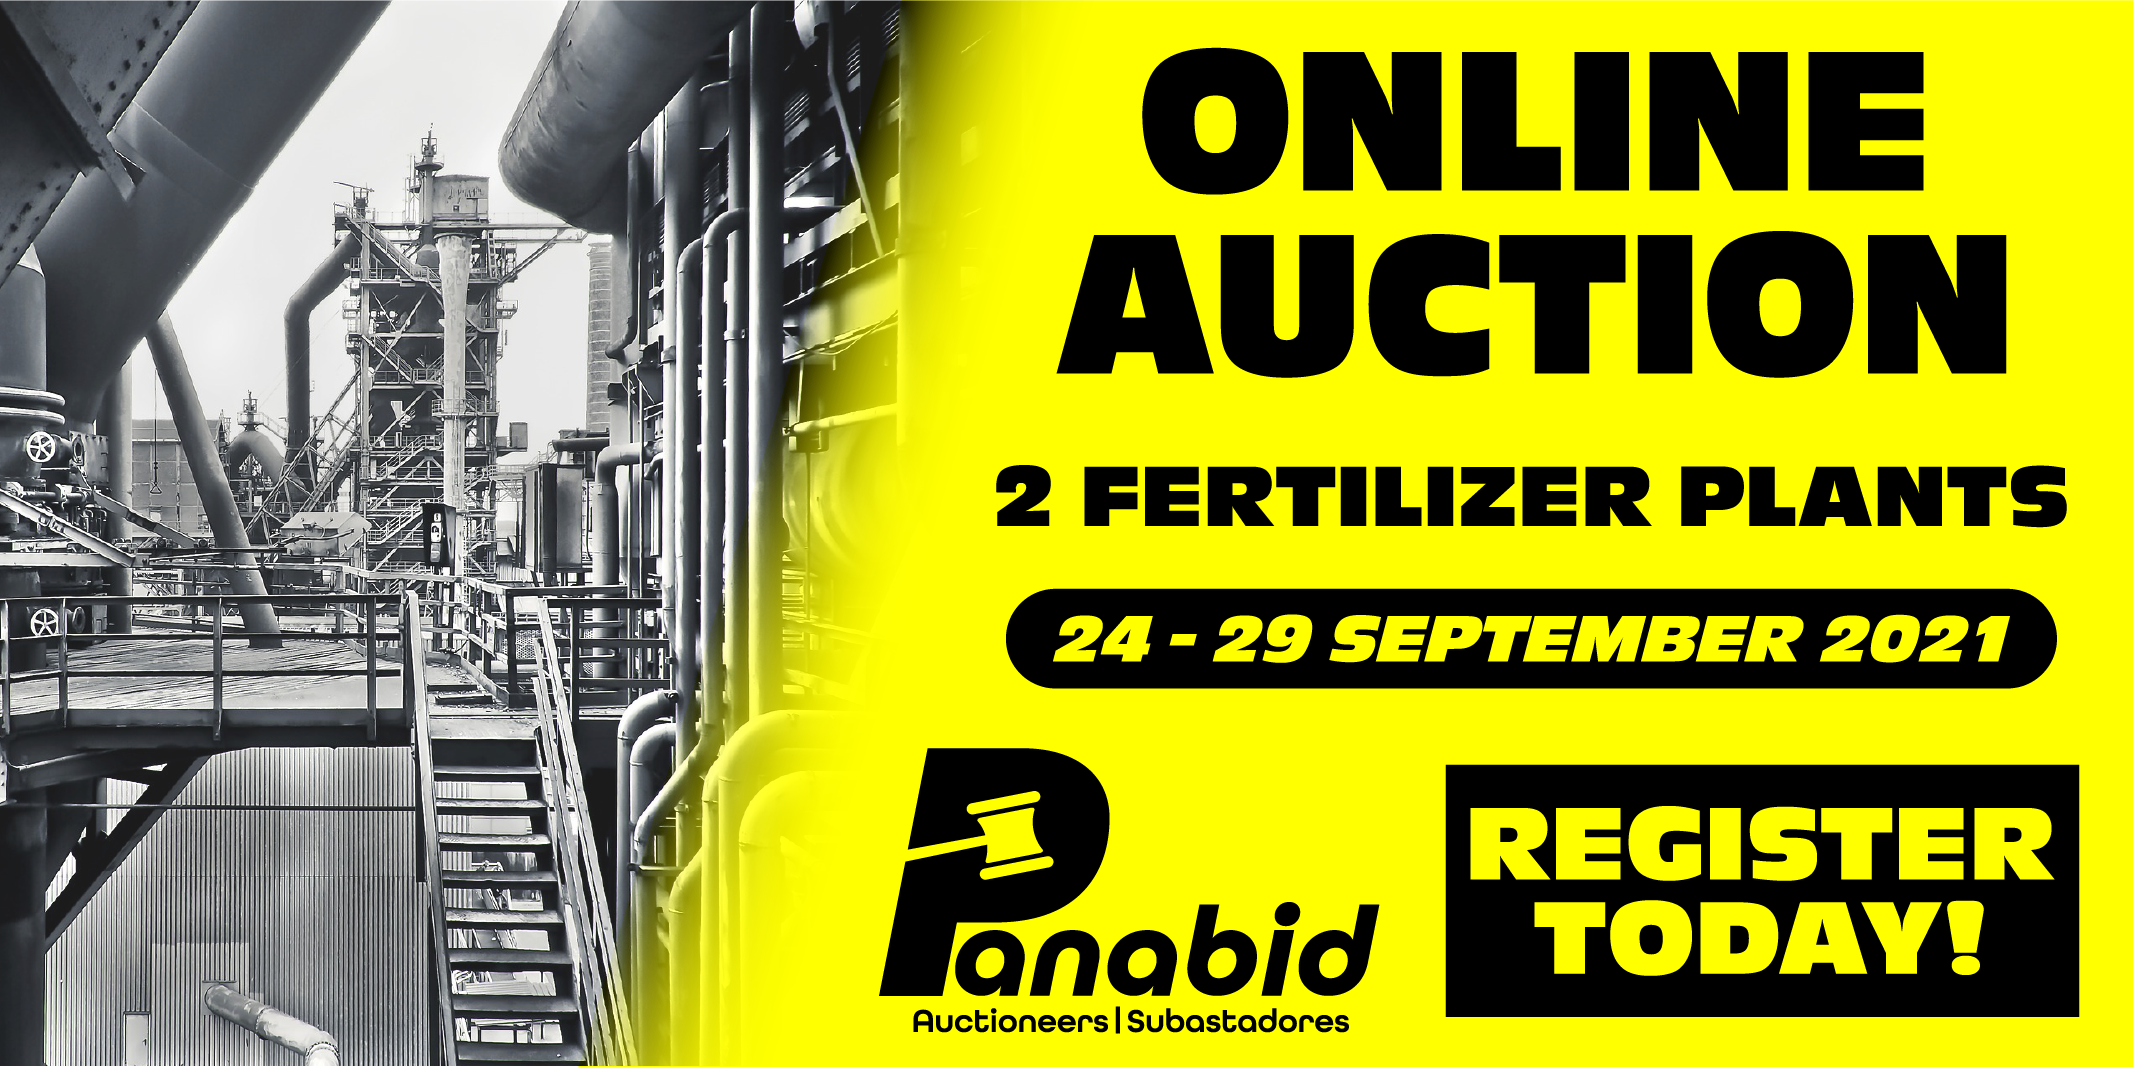 TWO RELOCATABLE FERTILIZER FORMULATION/COATING PLANTS FOR AUCTION LOCATED IN AUSTRALIA